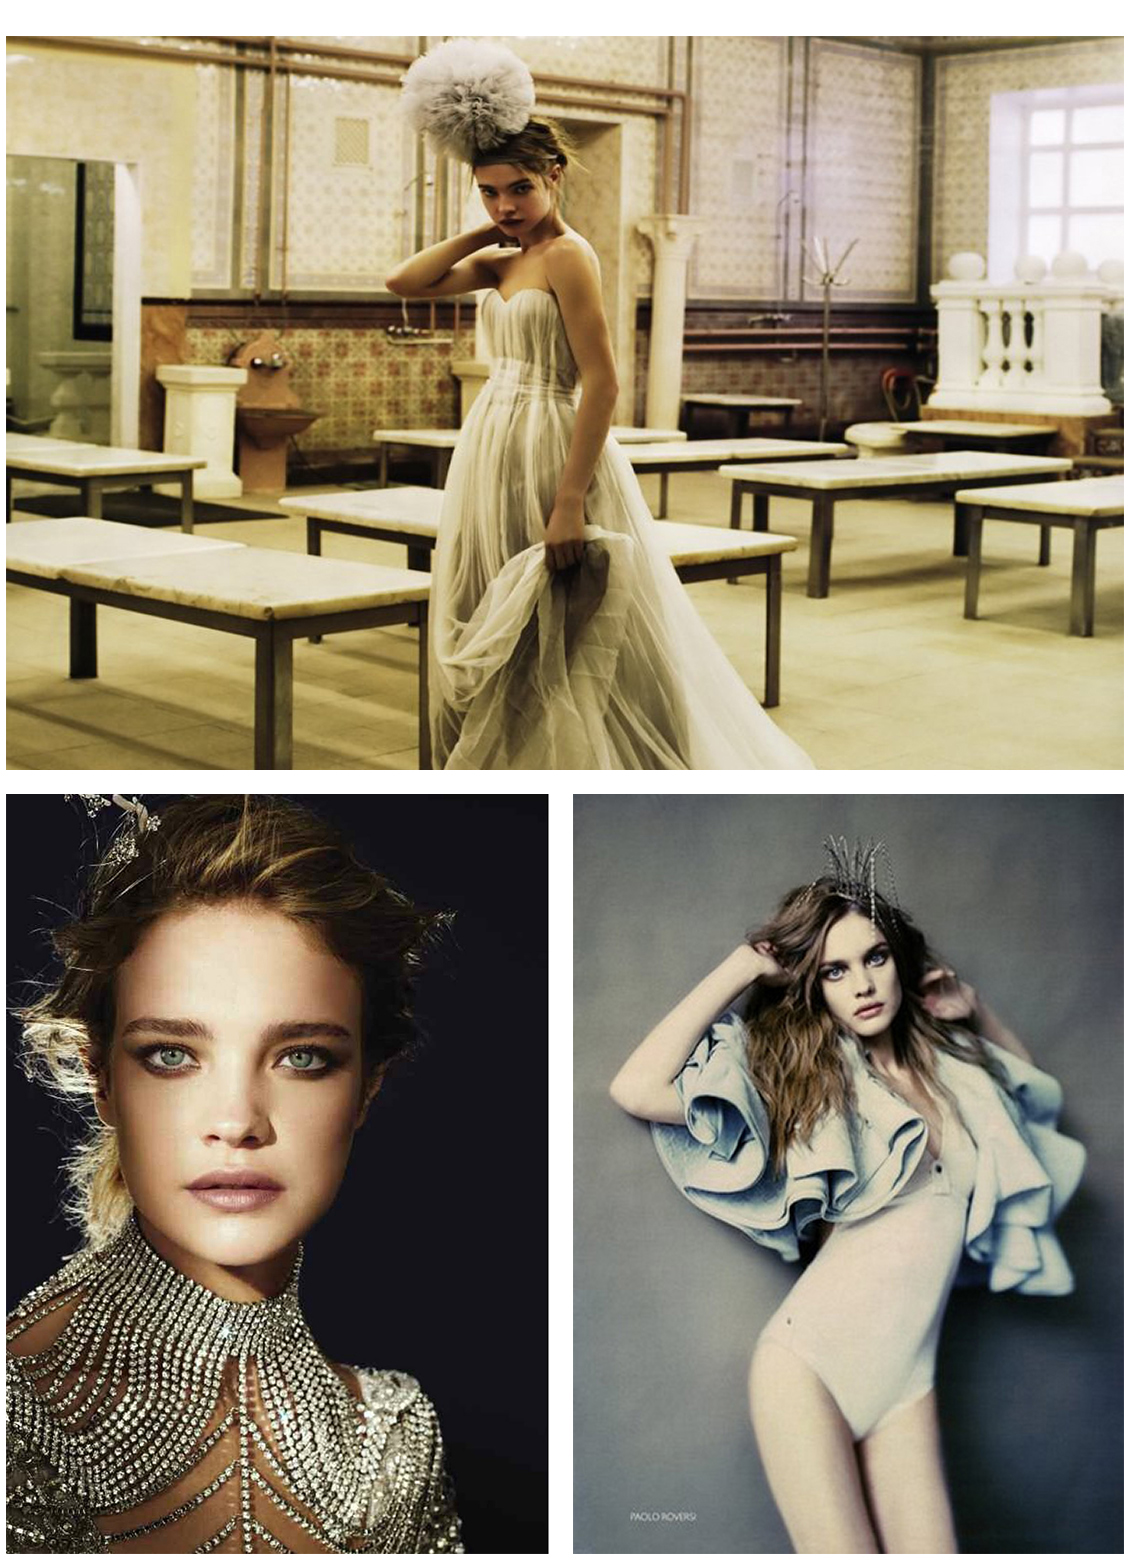 Natalia Vodianova Wedding Dress Vintageweddingplanner